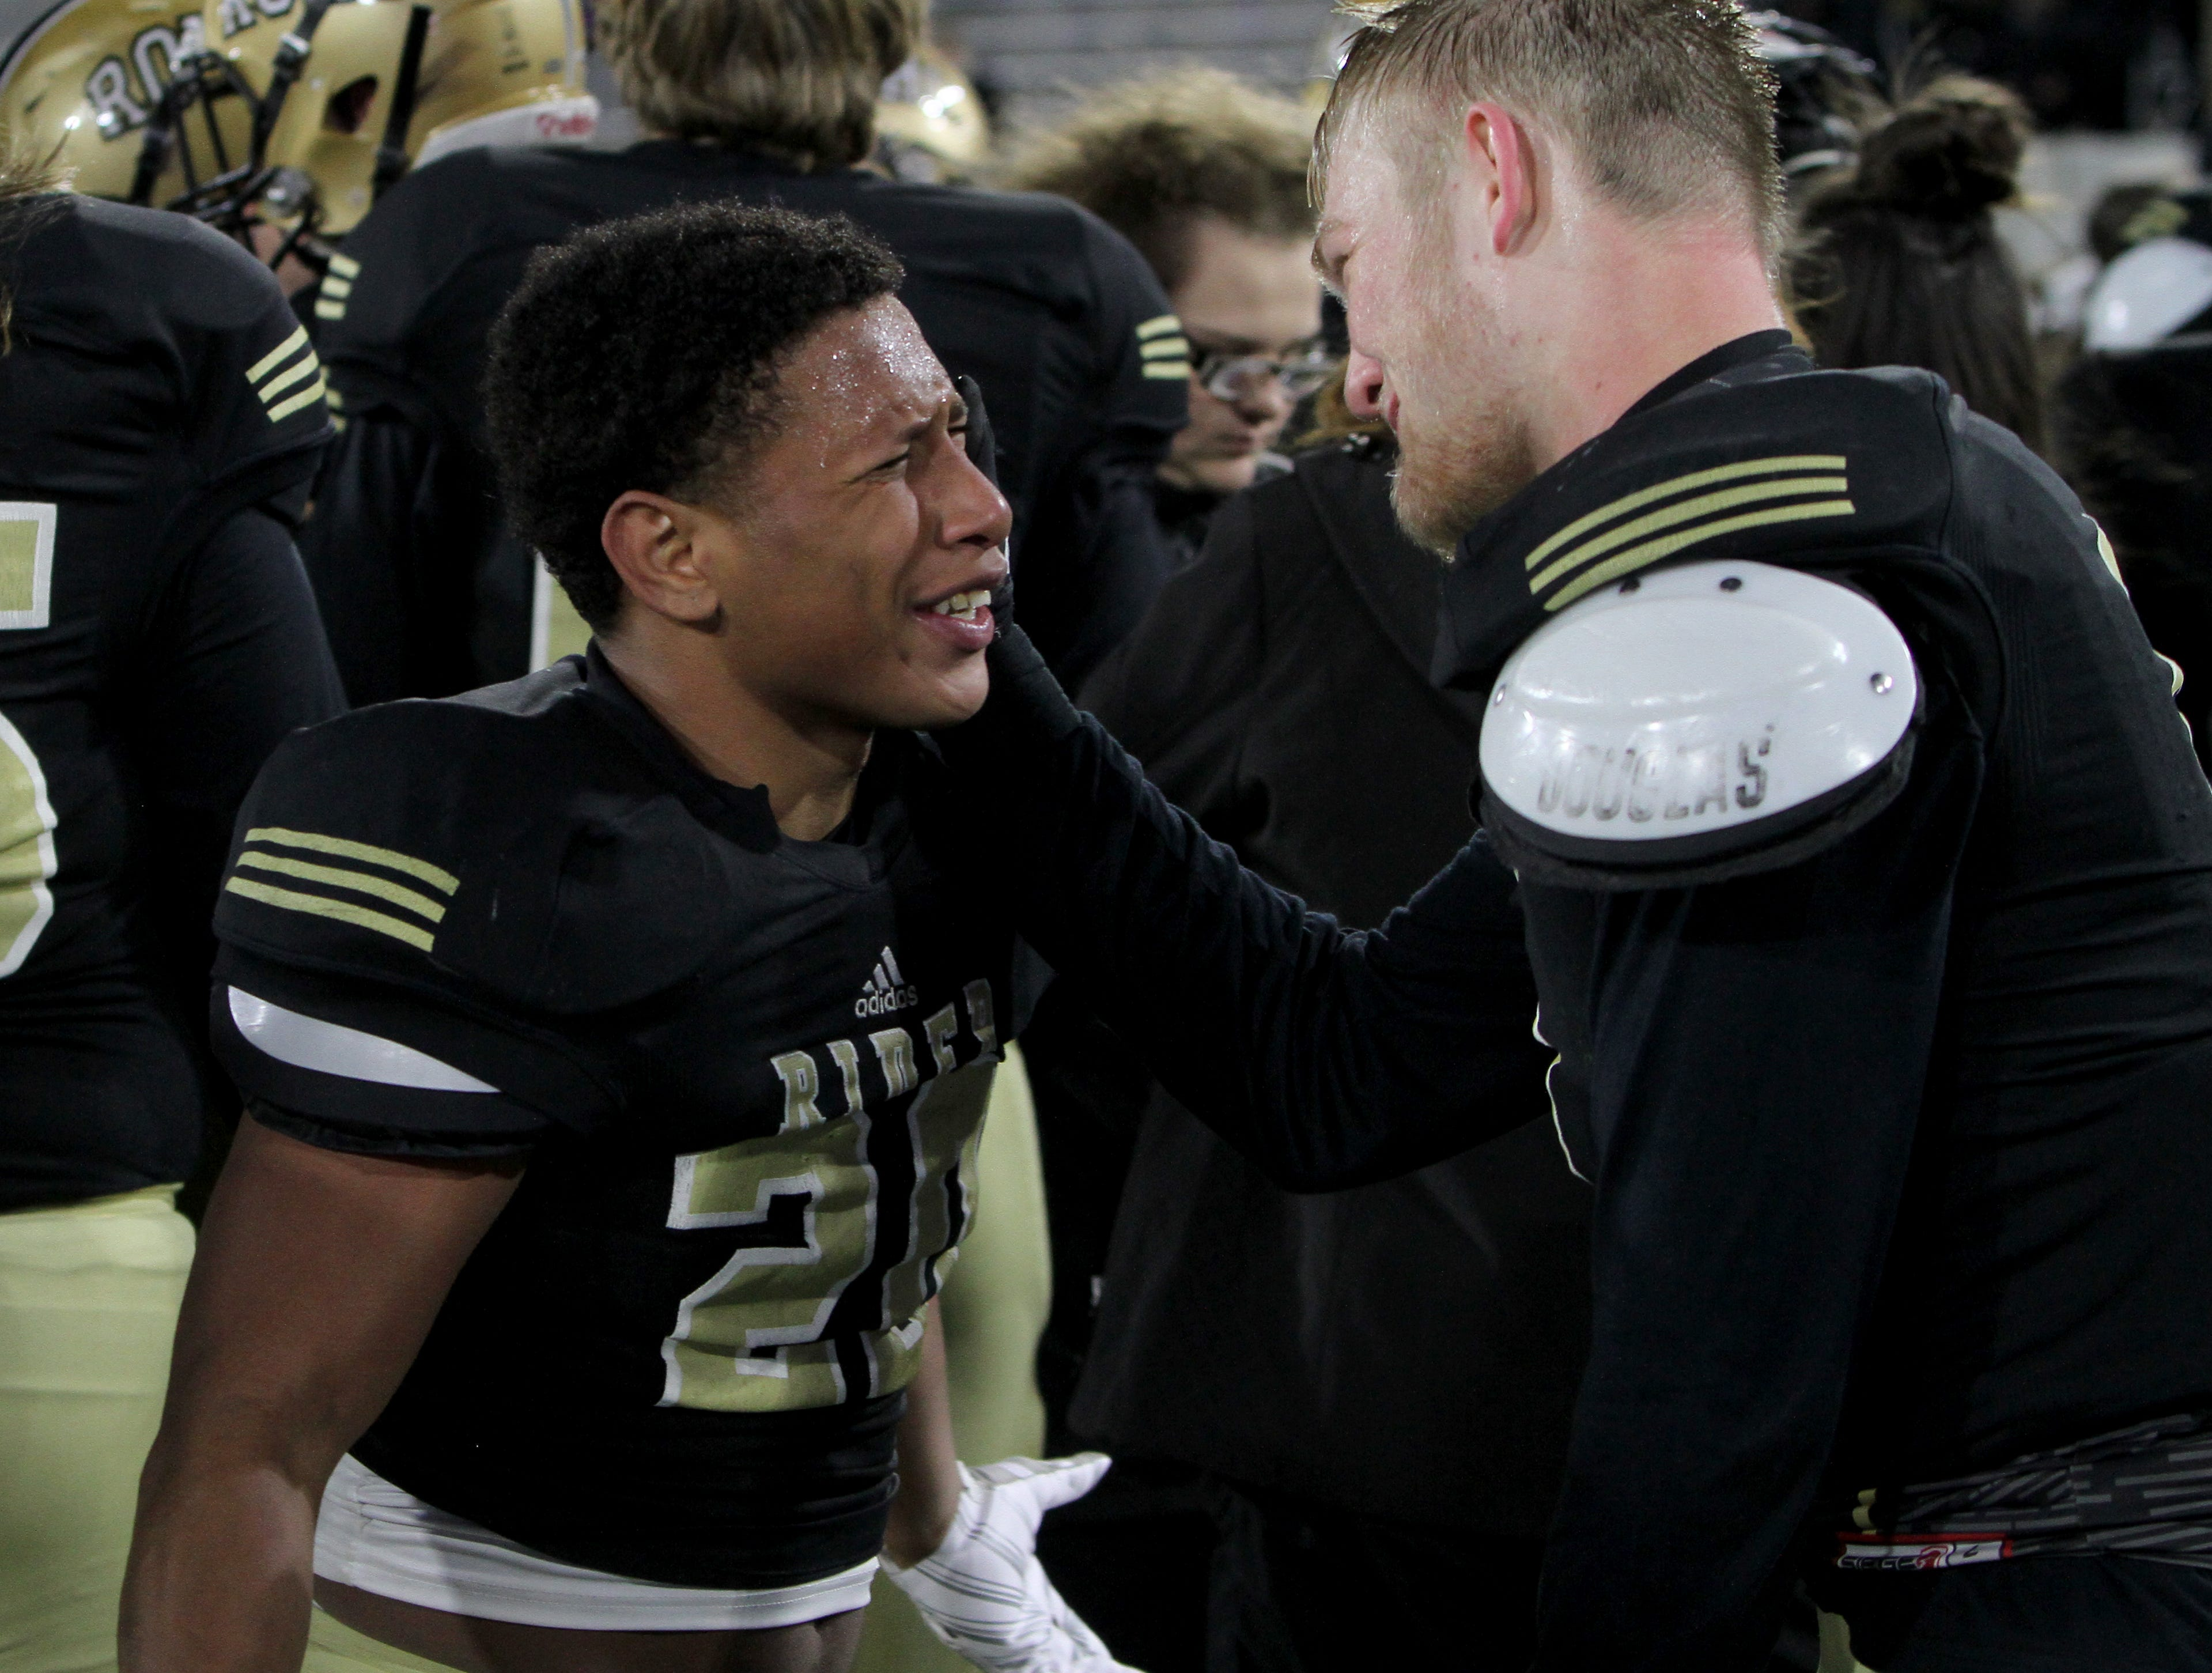 Rider's Tre Byrd celebrates with Jack Hatch after the Raiders regional title win over Lubbock Cooper Thursday, Dec. 6, 2018, at Wildcats Stadium in Abilene. The Raiders defeated the Pirates 38-35.